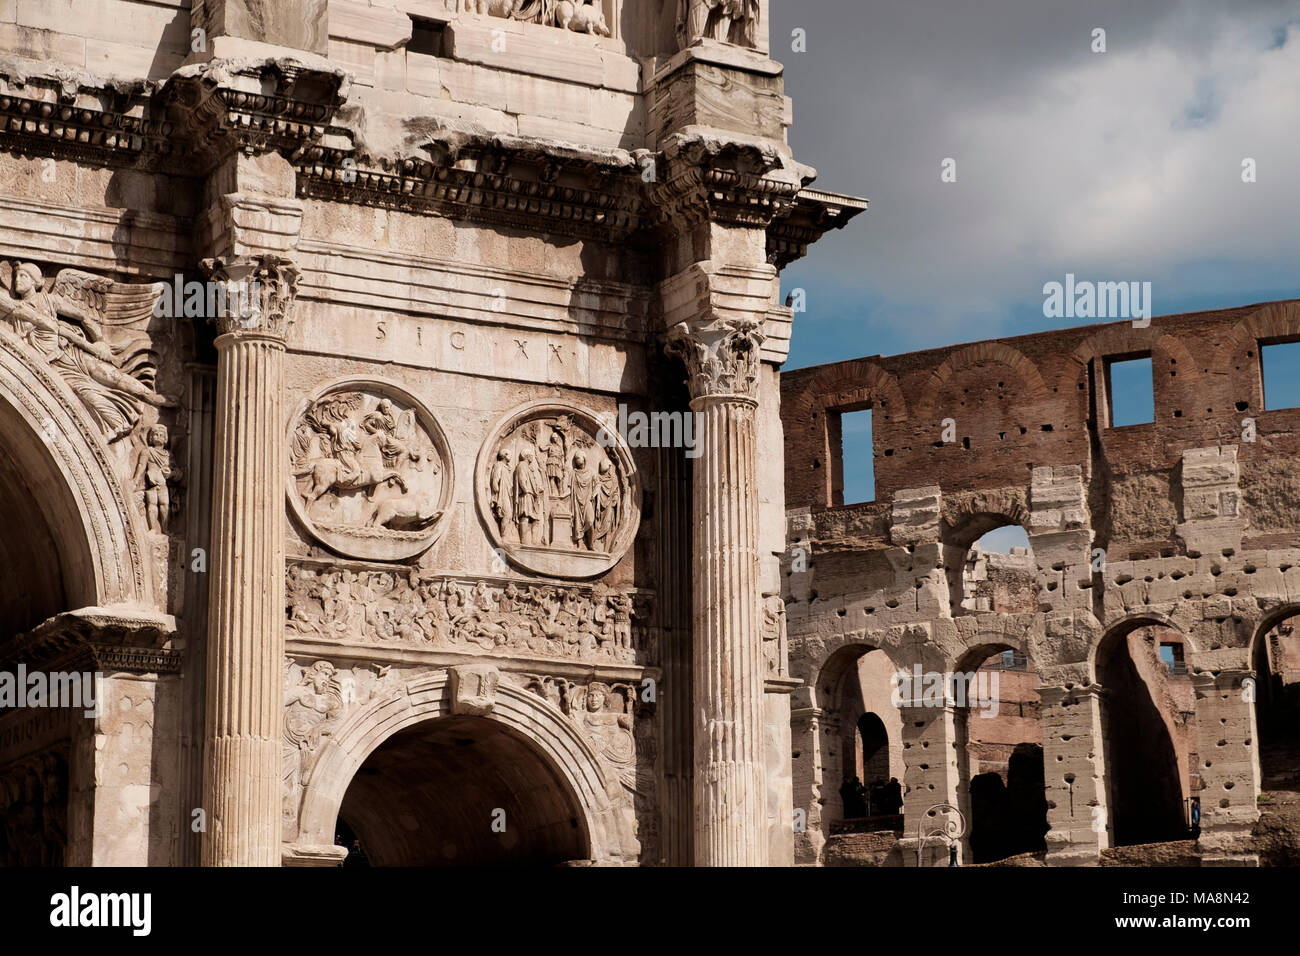 Detail of the Arch of Constantine, Arco di Costantino, Rome - Stock Image